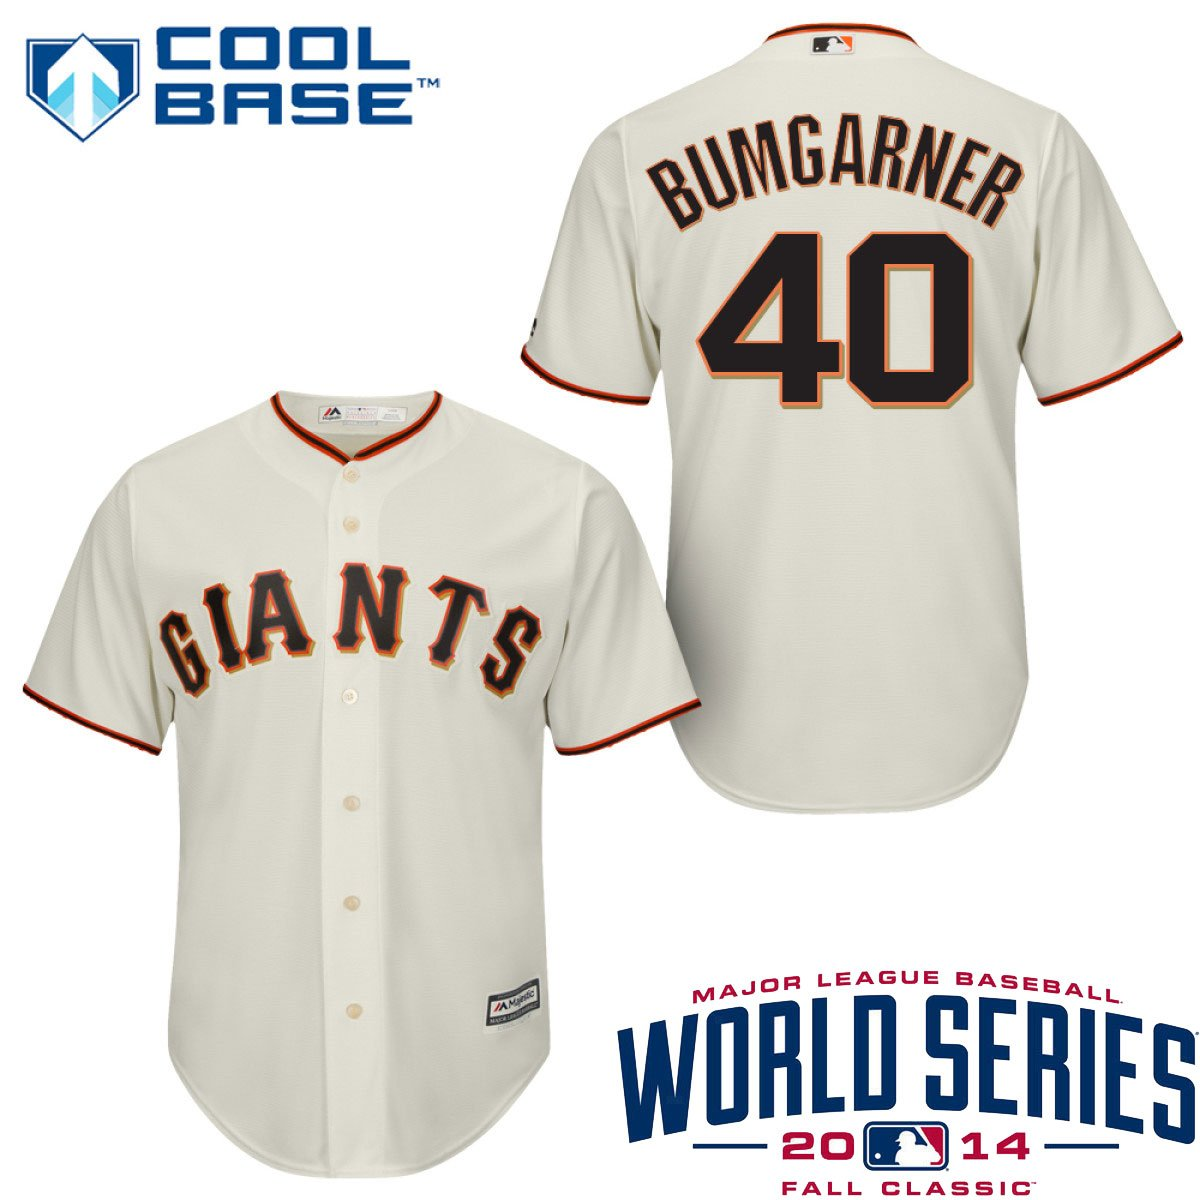 San Francisco Giants Bumgarner Jersey San Francisco Giants Home